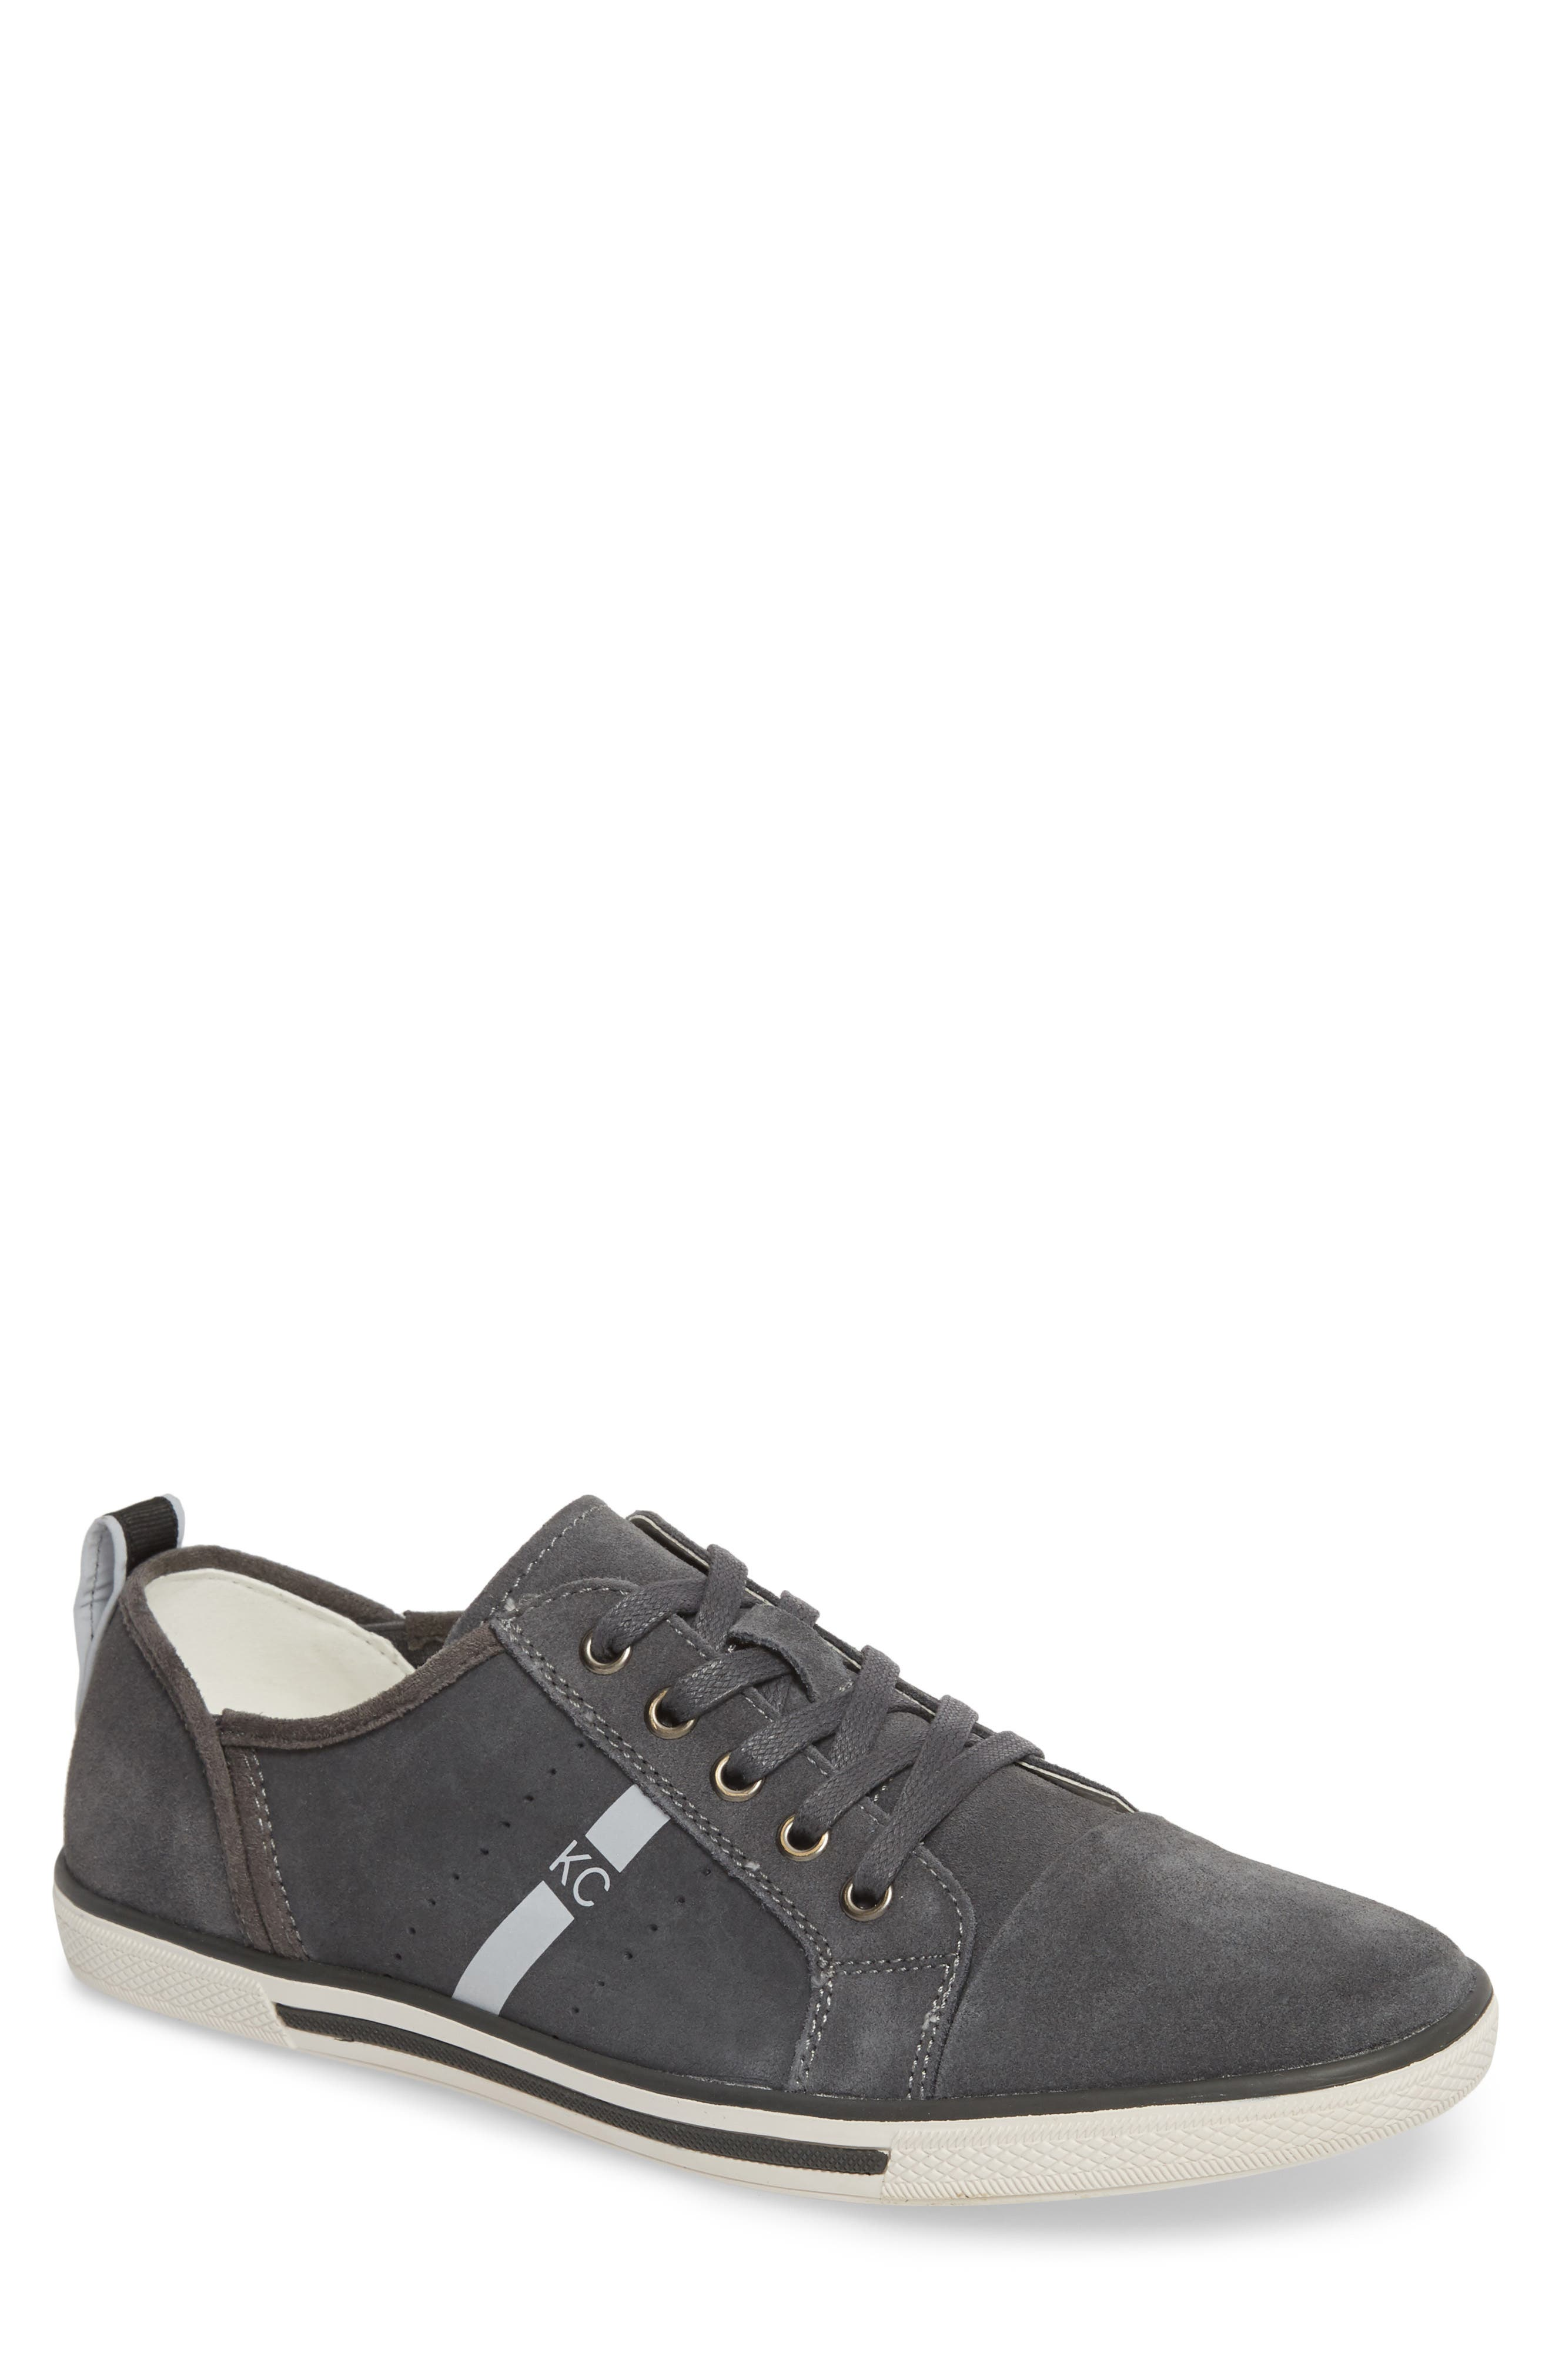 Center Low Sneaker,                         Main,                         color, GREY